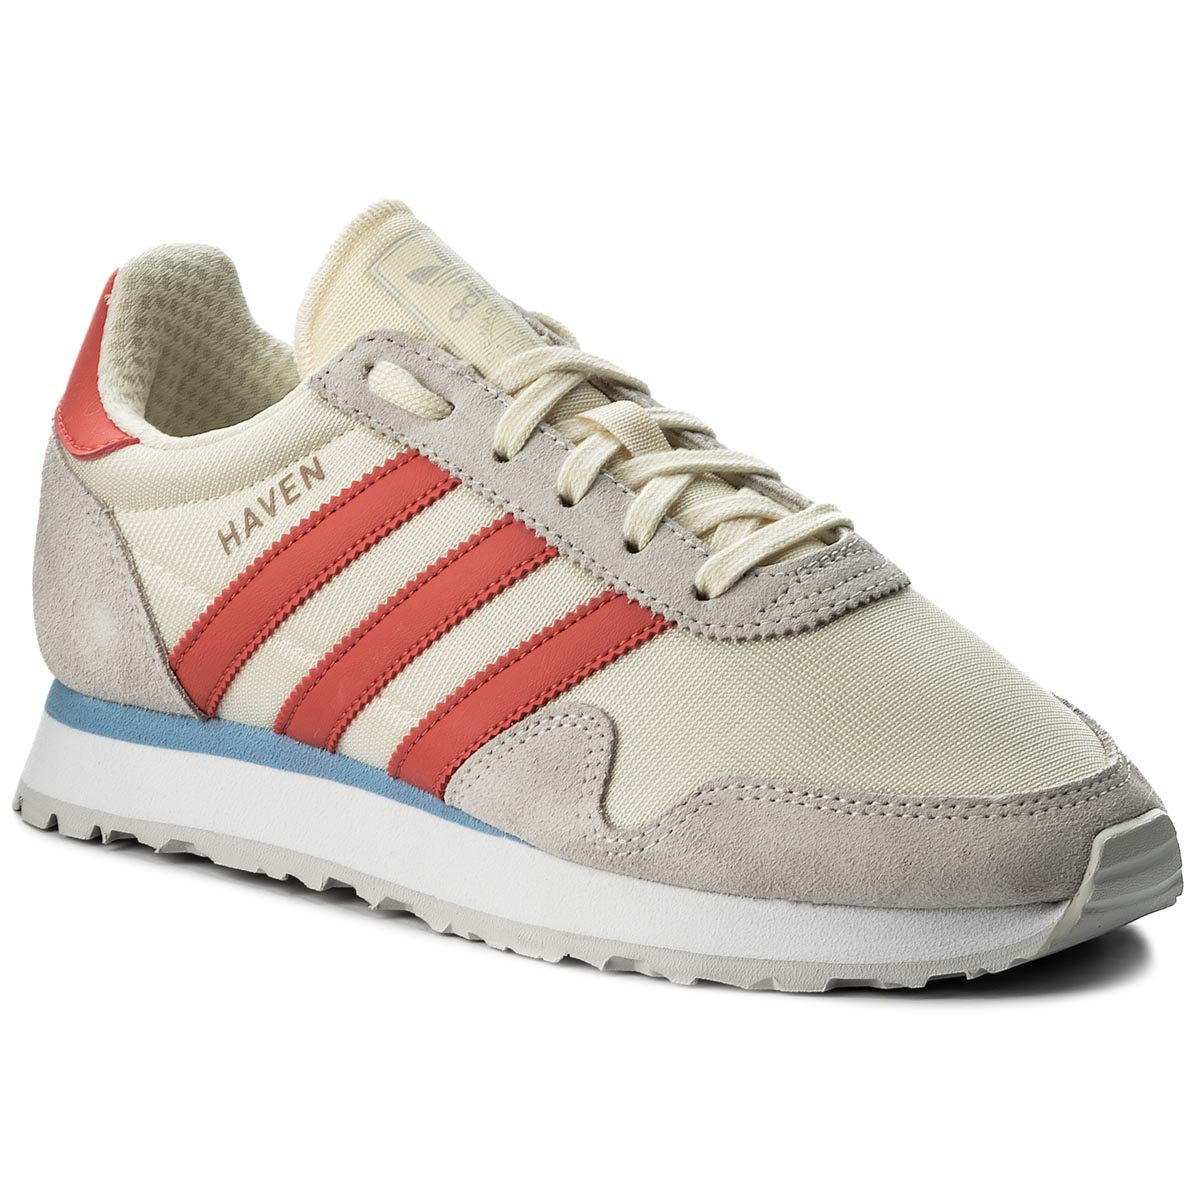 Buty adidas - Haven W CQ2525 Cwhite/Trasca/Greone